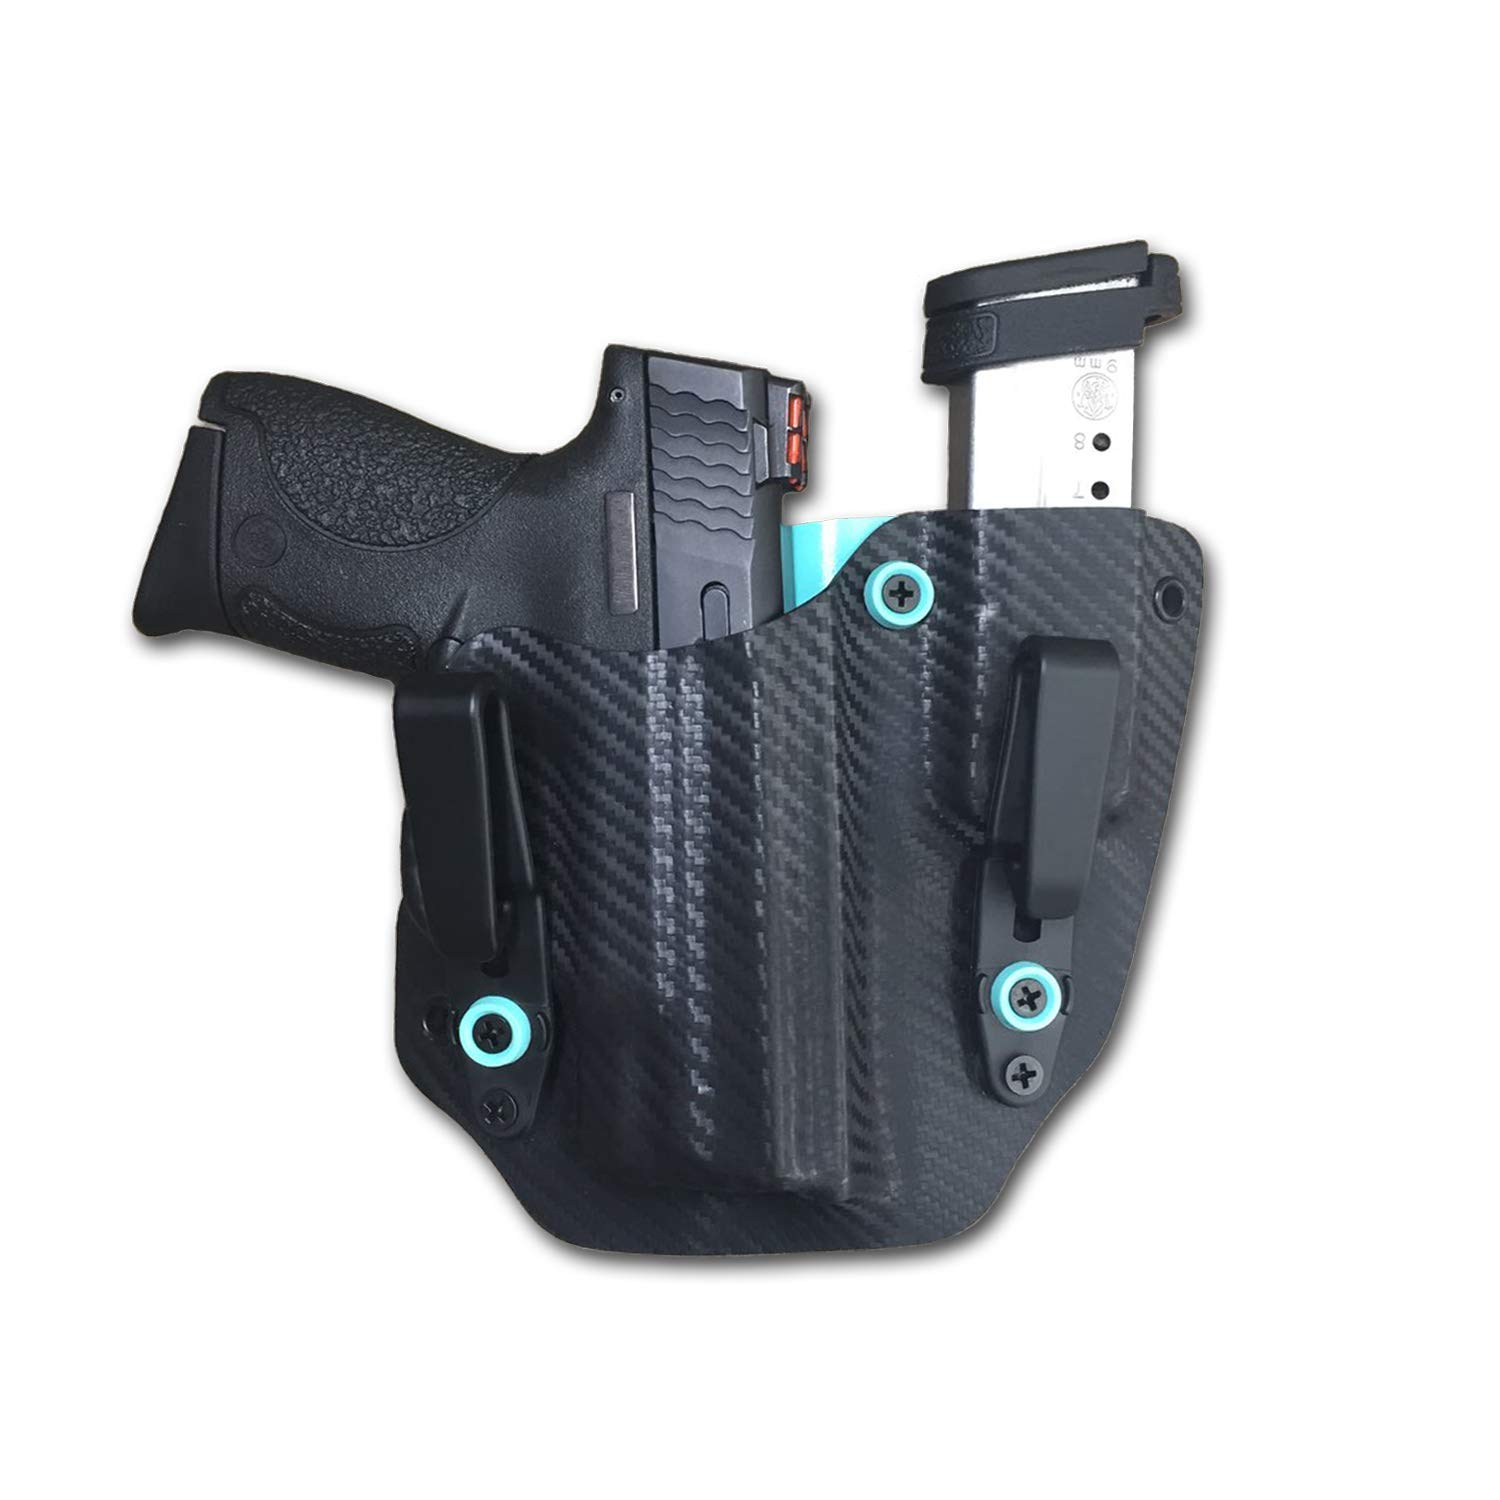 Elite Force Holsters Custom Holster - El Paso Mall fits New popularity G-Models Combo Carbon